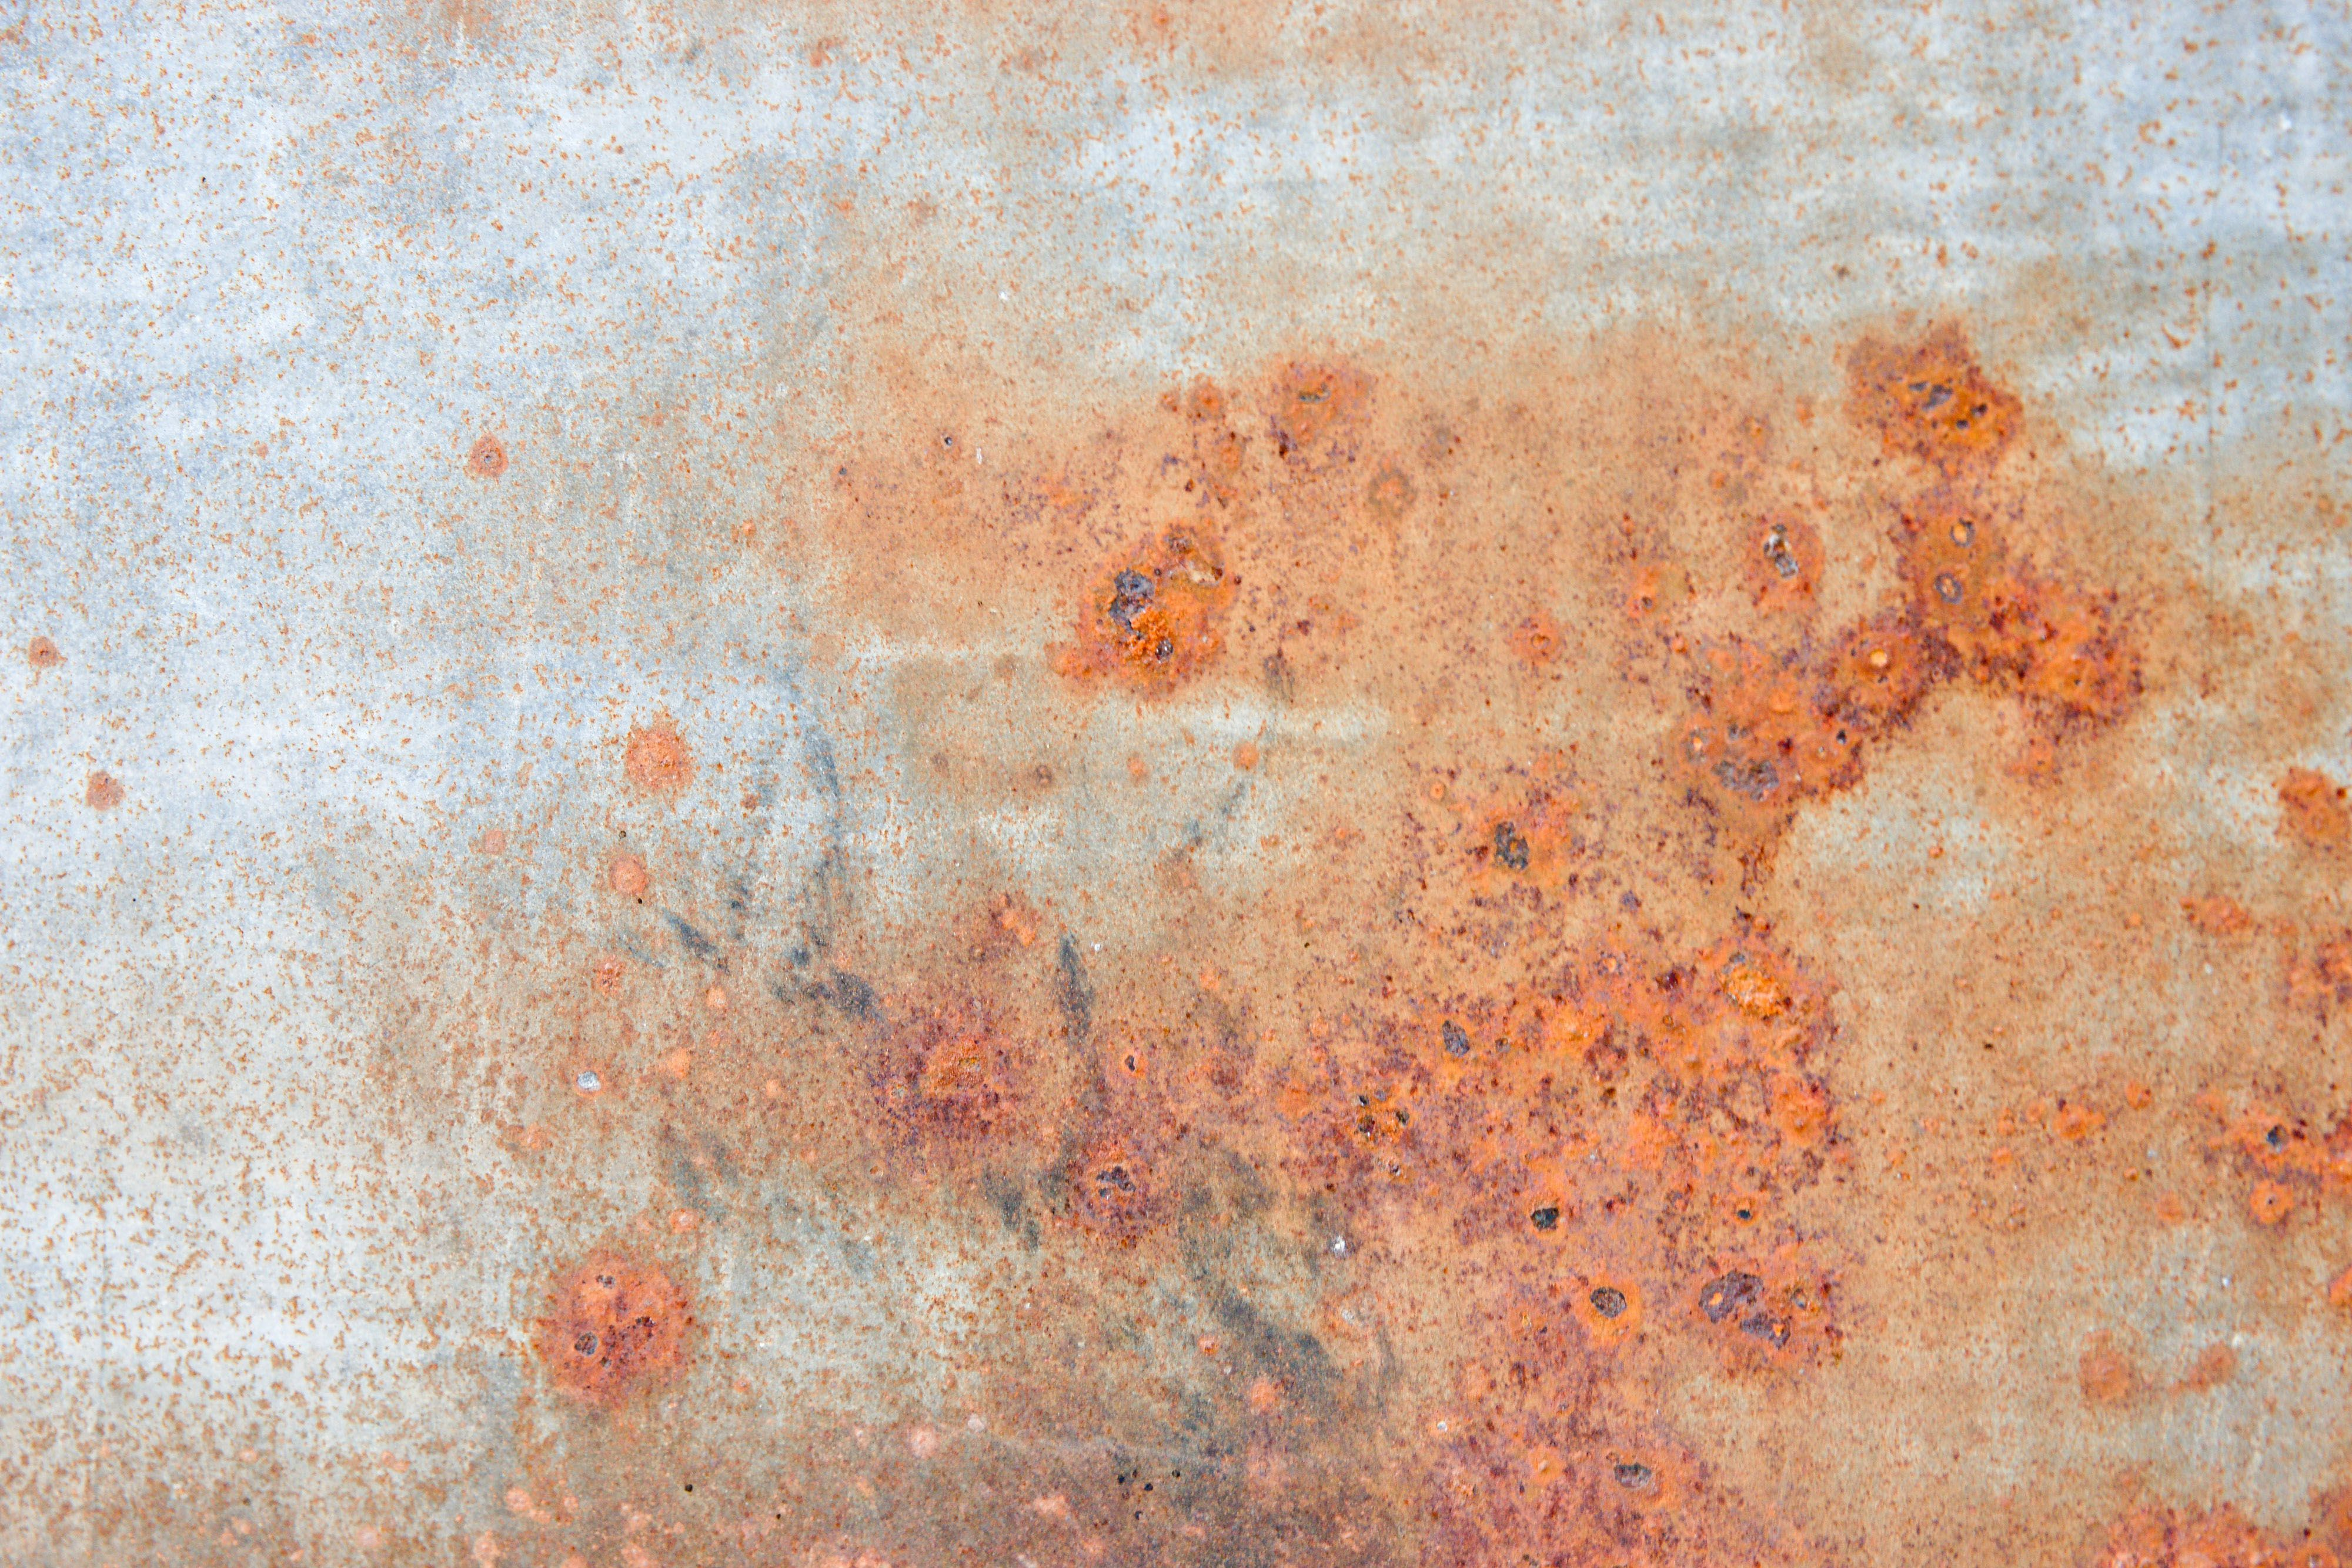 Old Spotty Rust Metal Background Texture Www Myfreetextures Com 1500 Free Textures Stock Photos Back Metal Background Textured Background Metal Texture